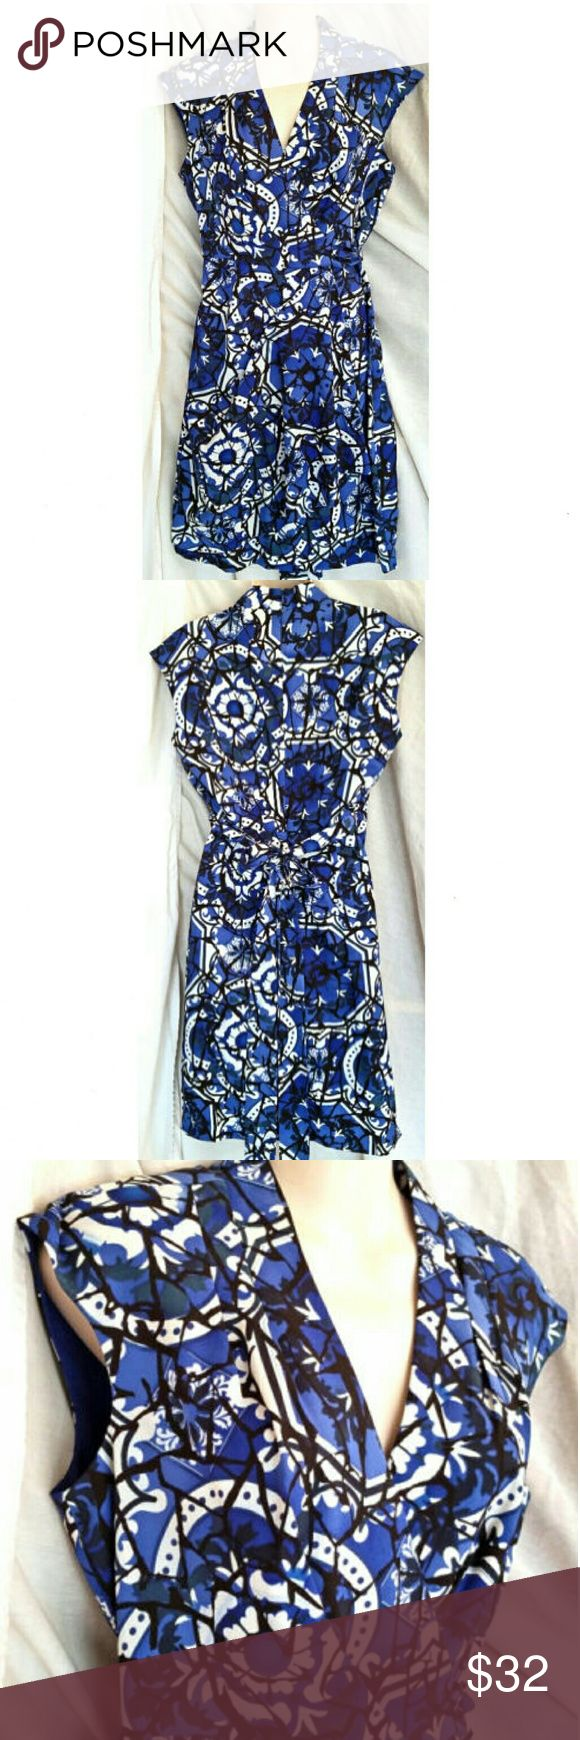 "Donna Ricco N.Y. Blue Dress Size 8 Made by Donna Ricco N.Y. Size: 8  96% polyester, 4% spandex bodice 94% polyester, 6% spandex Tie gives the appearance of a wrap dress but it actually zips up the back  Measurements are approximate and un-stretched  Length 39"" Chest 36"" Waist 28"" Hips 40"" Donna Ricco Dresses"